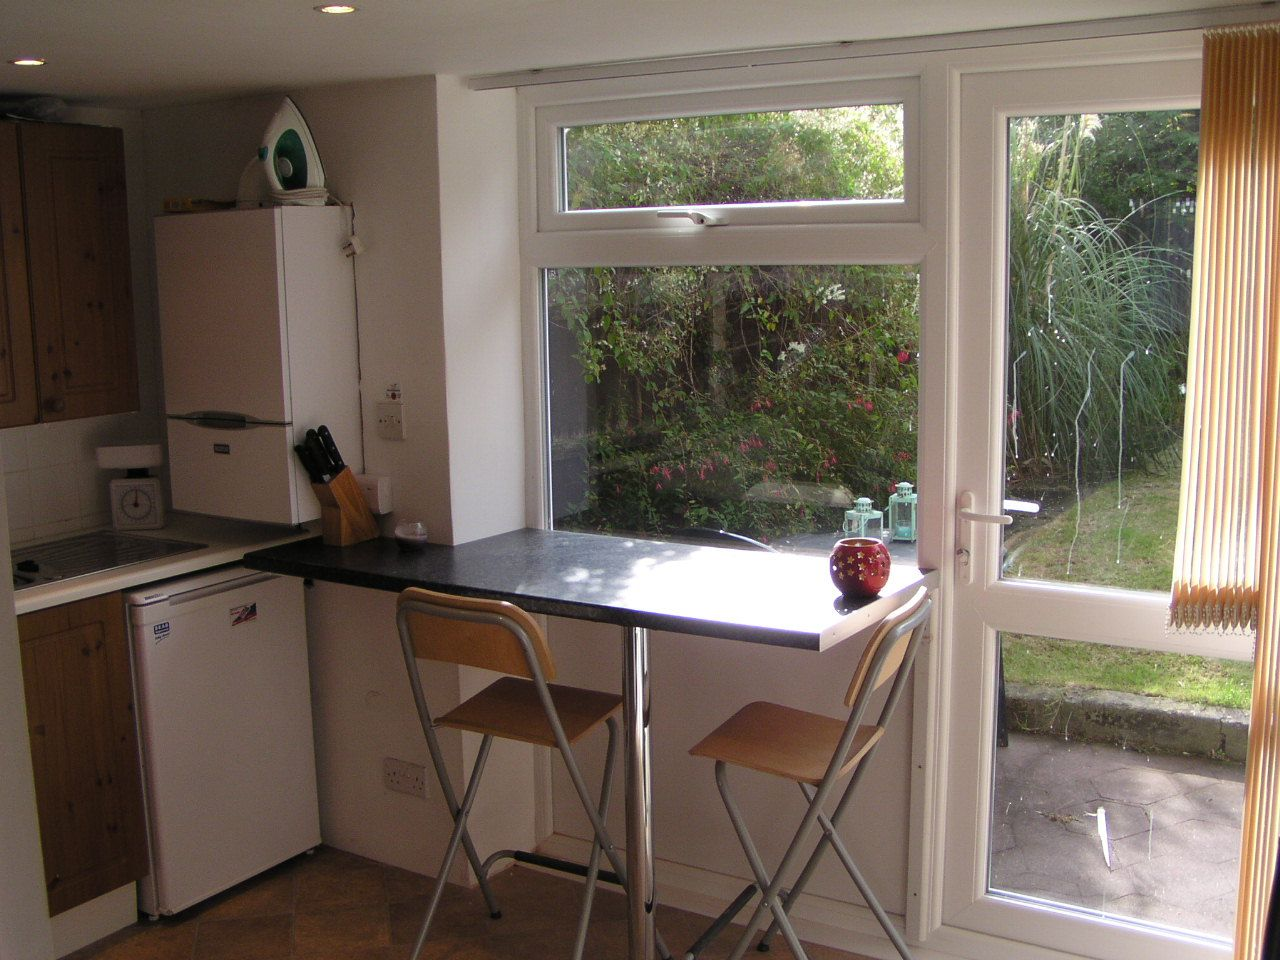 Exterior view counter across low window google search for Kitchen window bar ideas